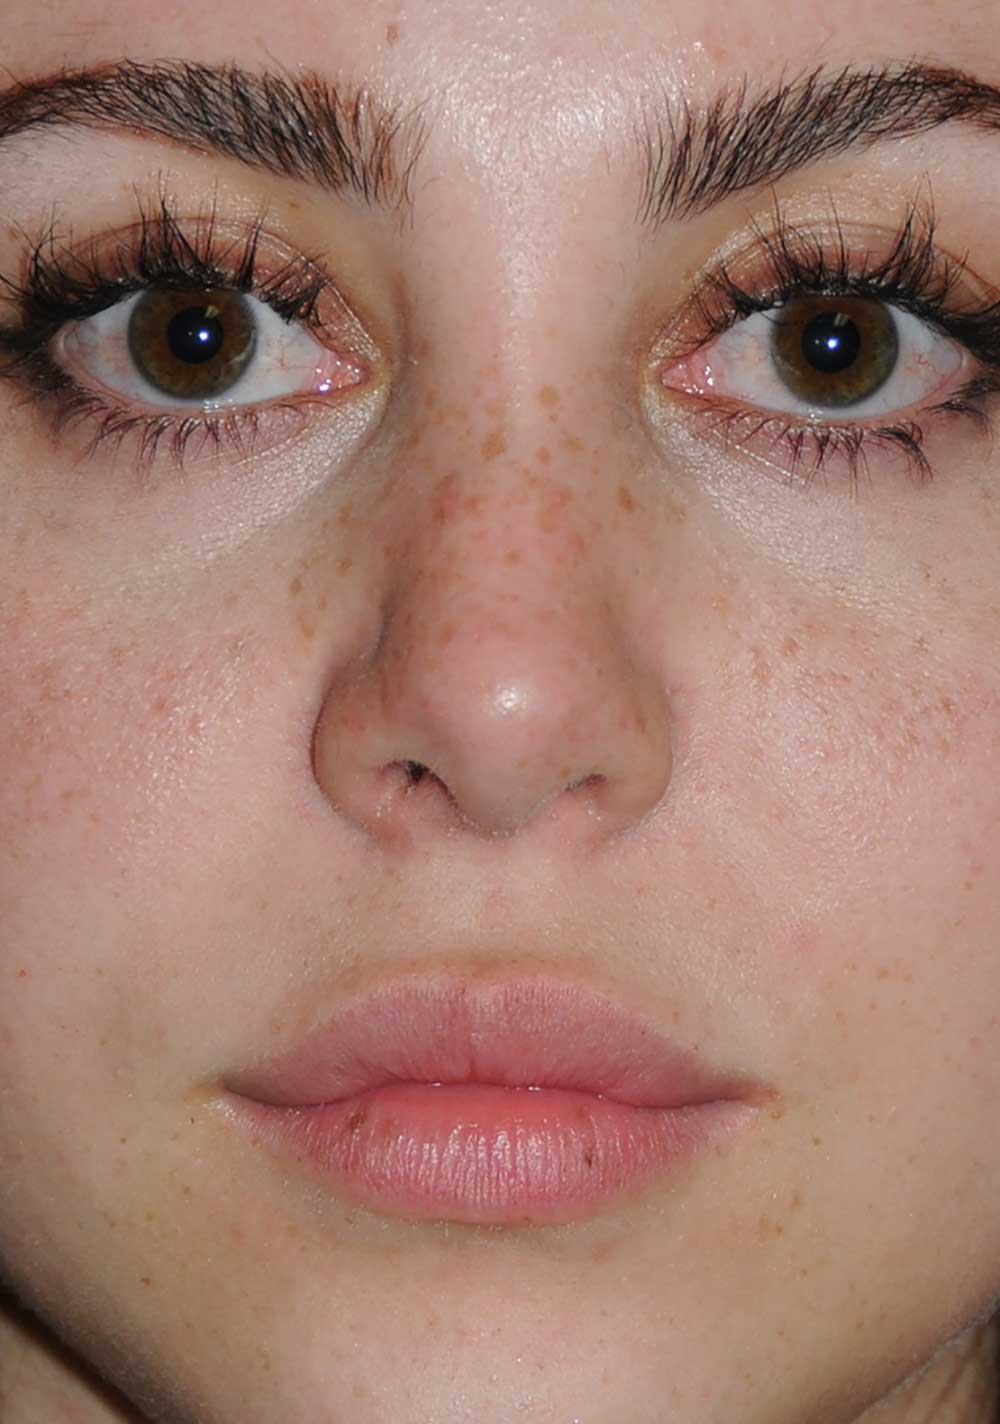 Rhinoplasty for a Bulbous Nasal Tip, Prominent Nasal Bridge, Short Nose / Columella and Lip Fat Transfer for Small Thin Lateral Upper Outer Lips After Close Up View